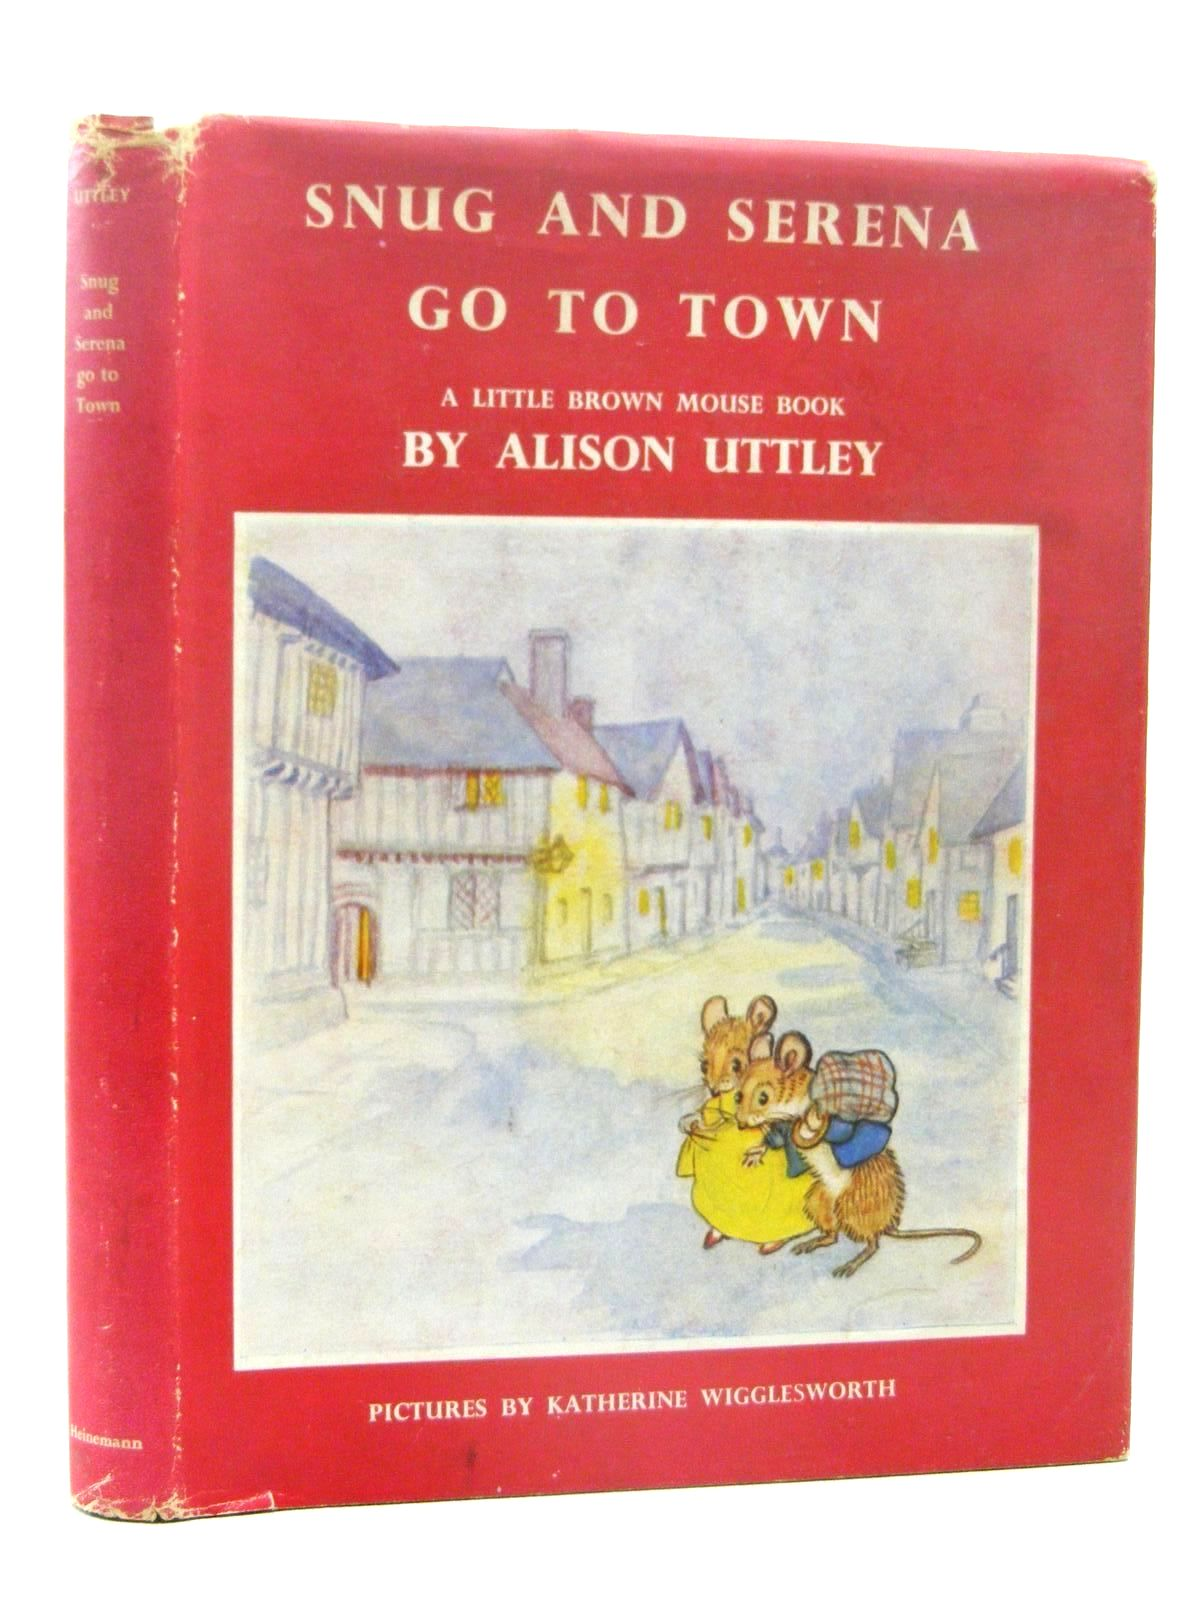 Photo of SNUG AND SERENA GO TO TOWN written by Uttley, Alison illustrated by Wigglesworth, Katherine published by William Heinemann Ltd. (STOCK CODE: 2124888)  for sale by Stella & Rose's Books